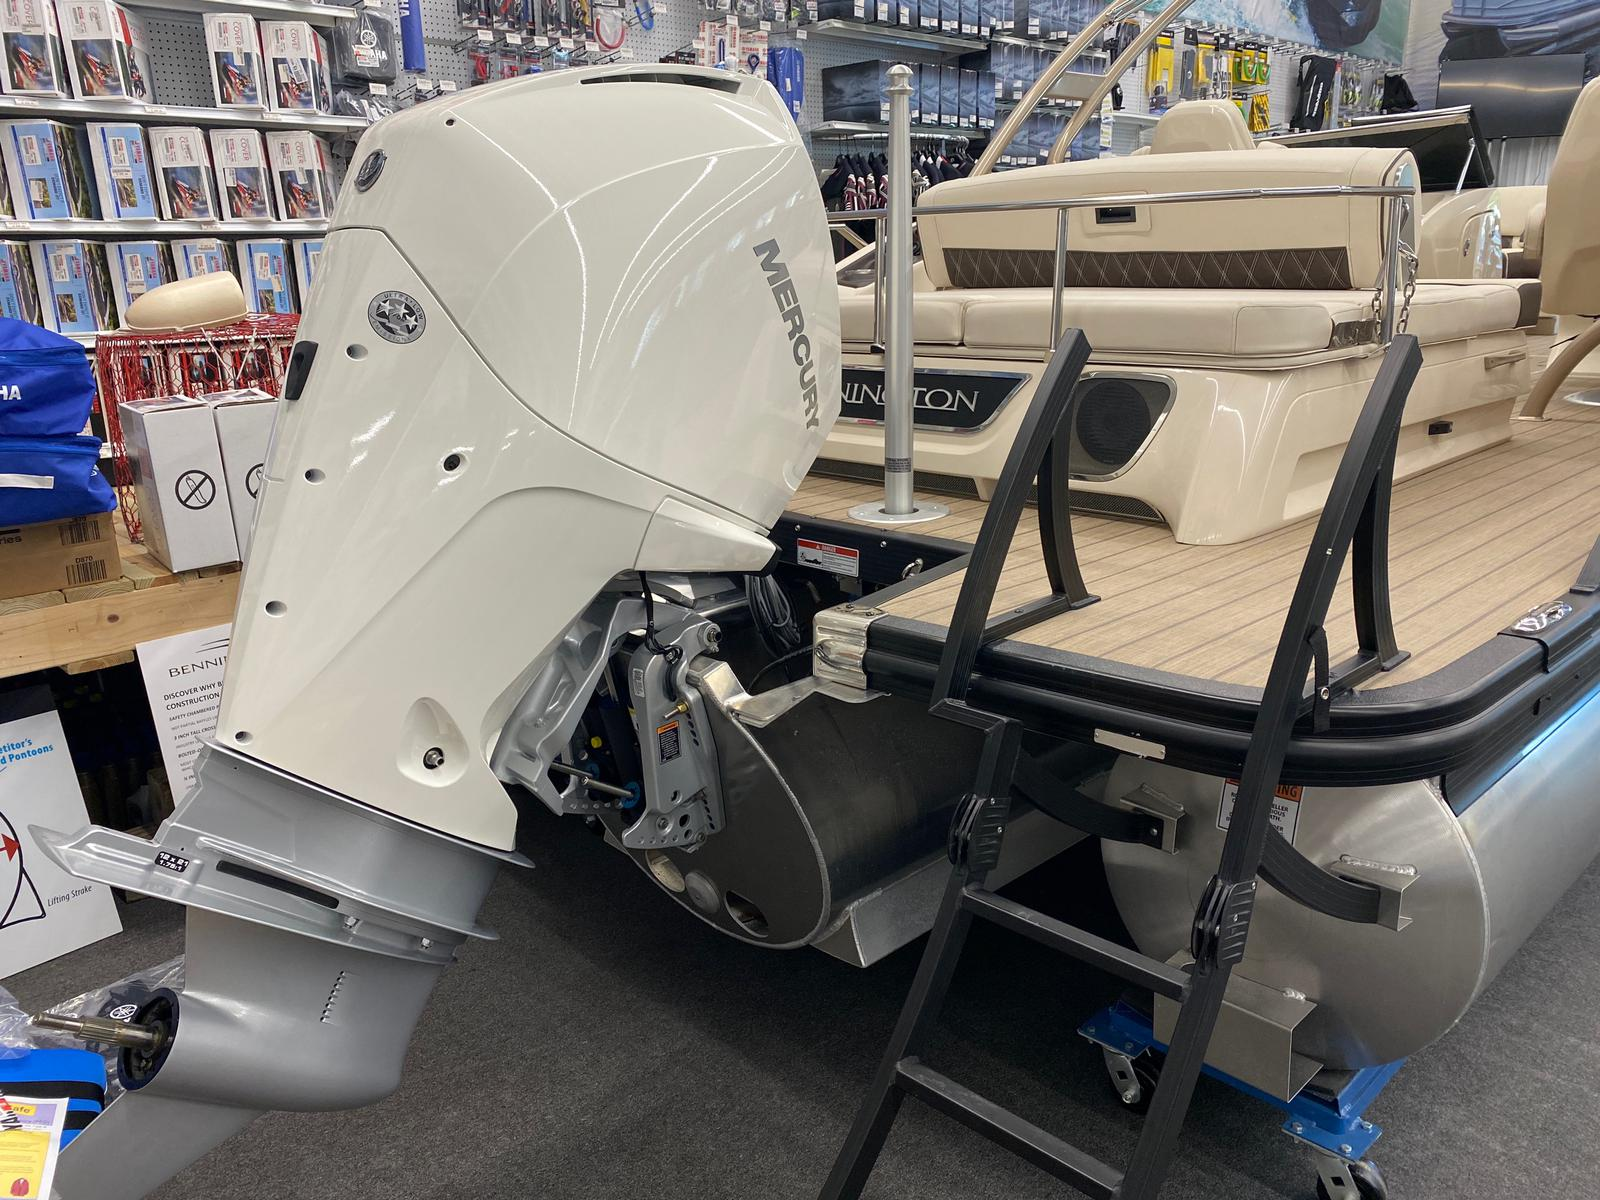 2021 Bennington boat for sale, model of the boat is 23 RSBWA WSHLD DLX Fold Open SP Arch Tri-Toon ESP Package & Image # 14 of 25